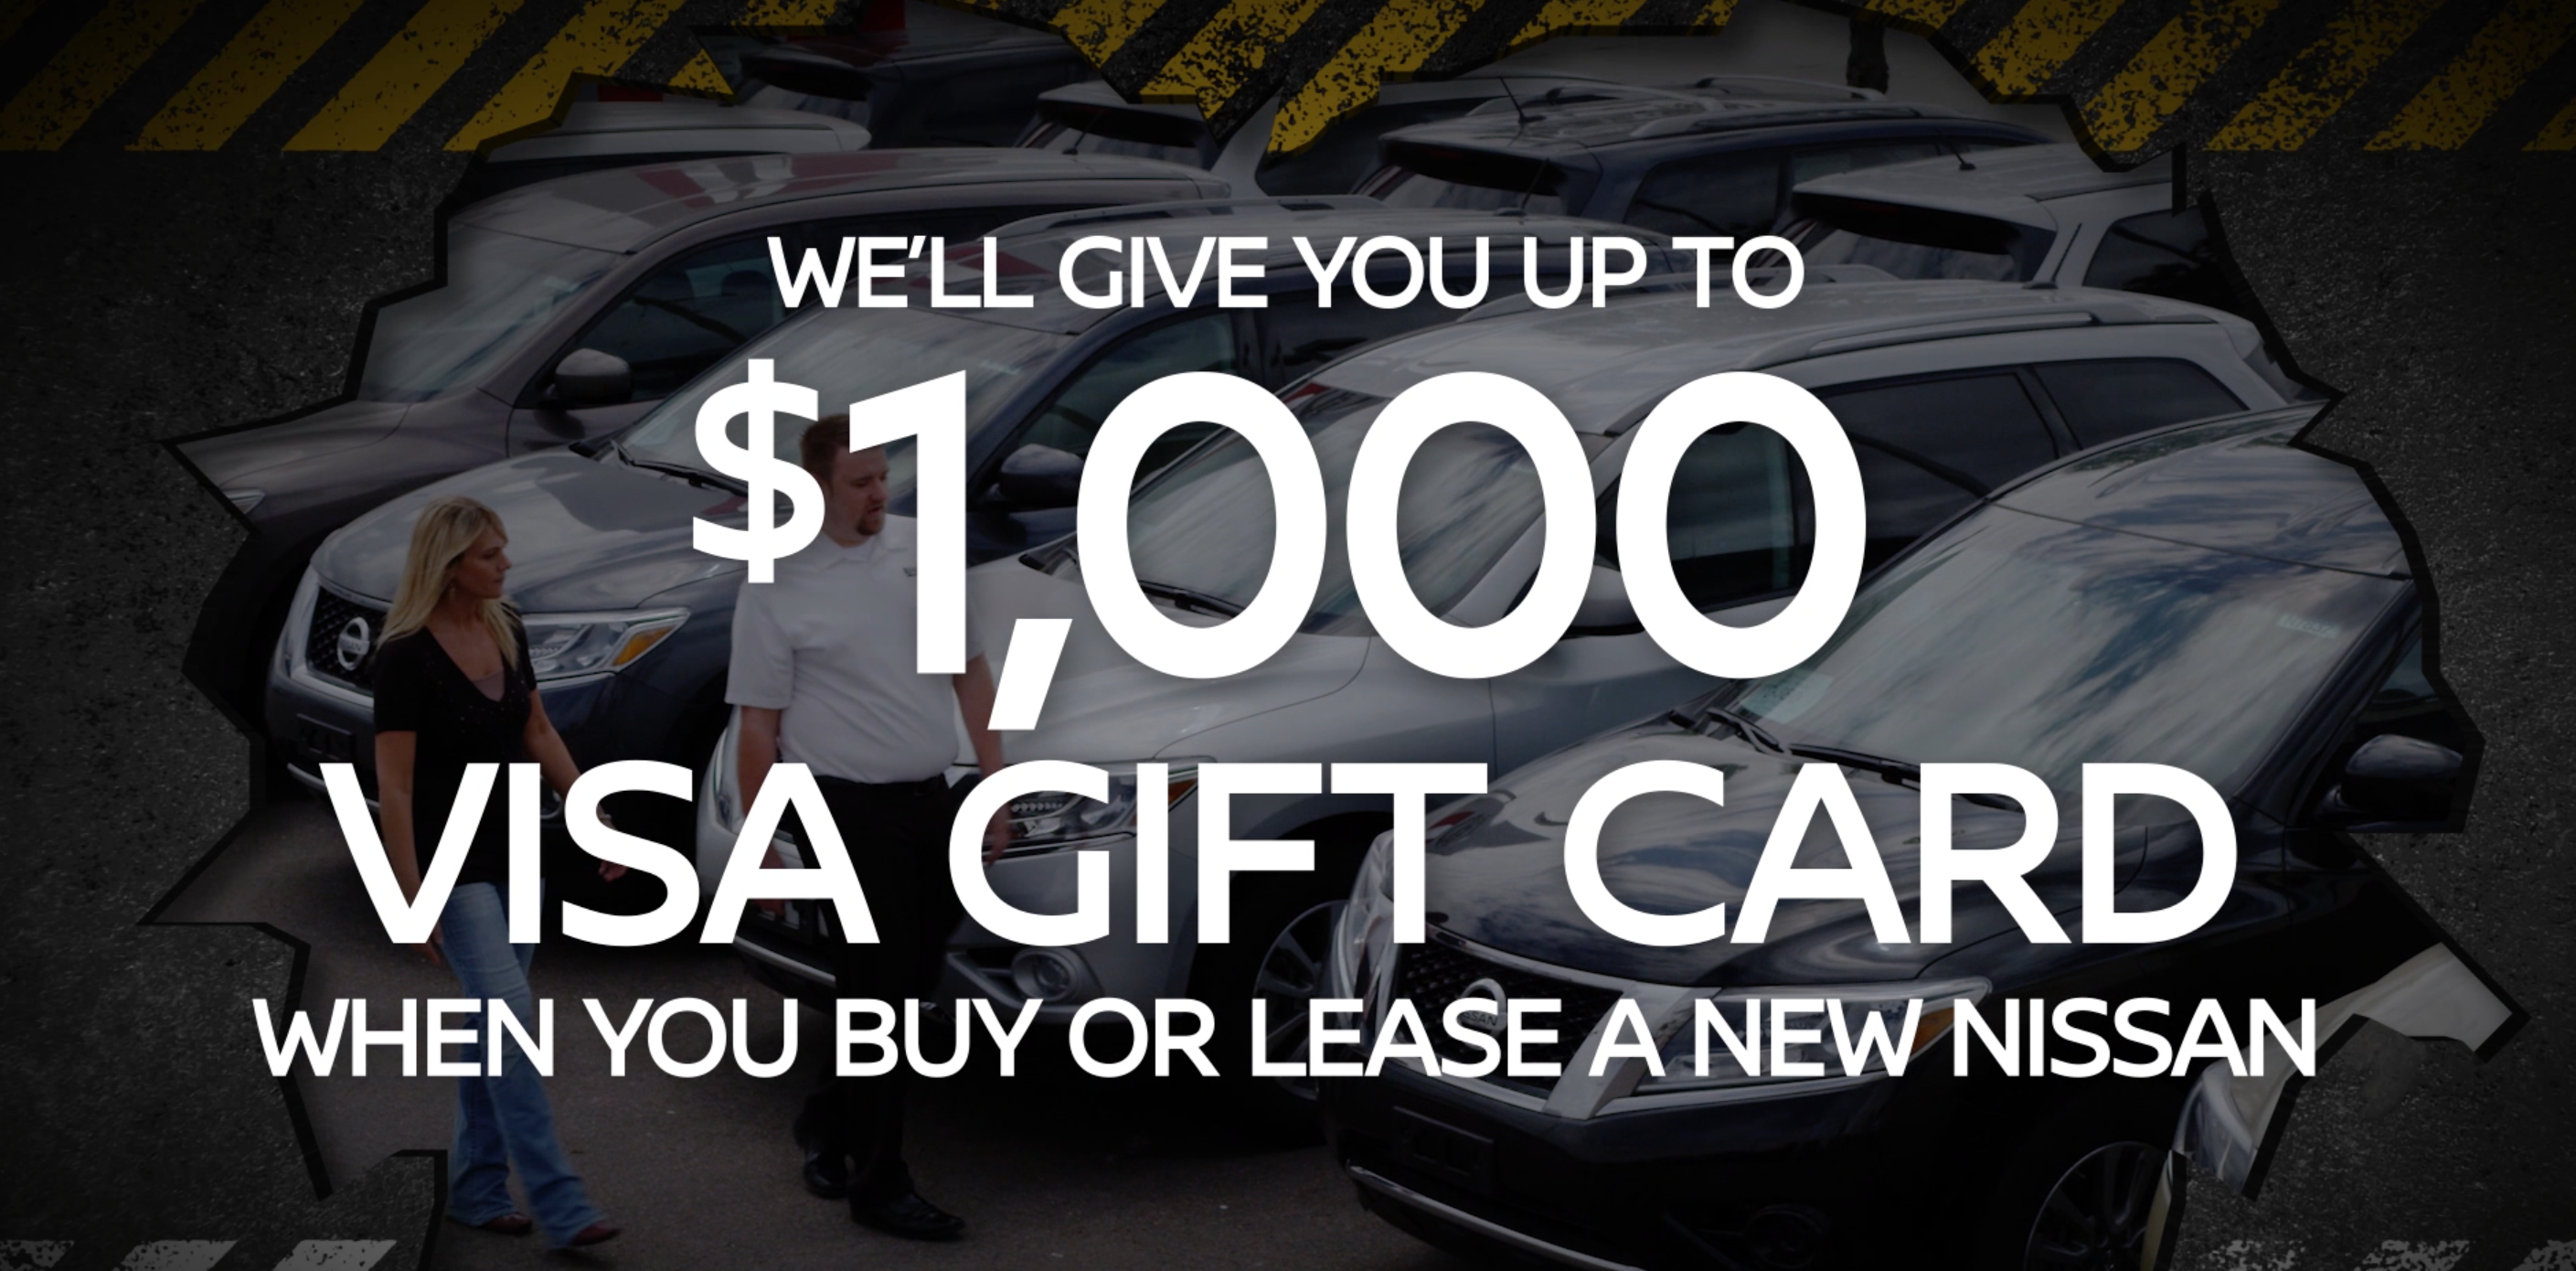 $1,000 Visa gift card offer on any new Nissan.